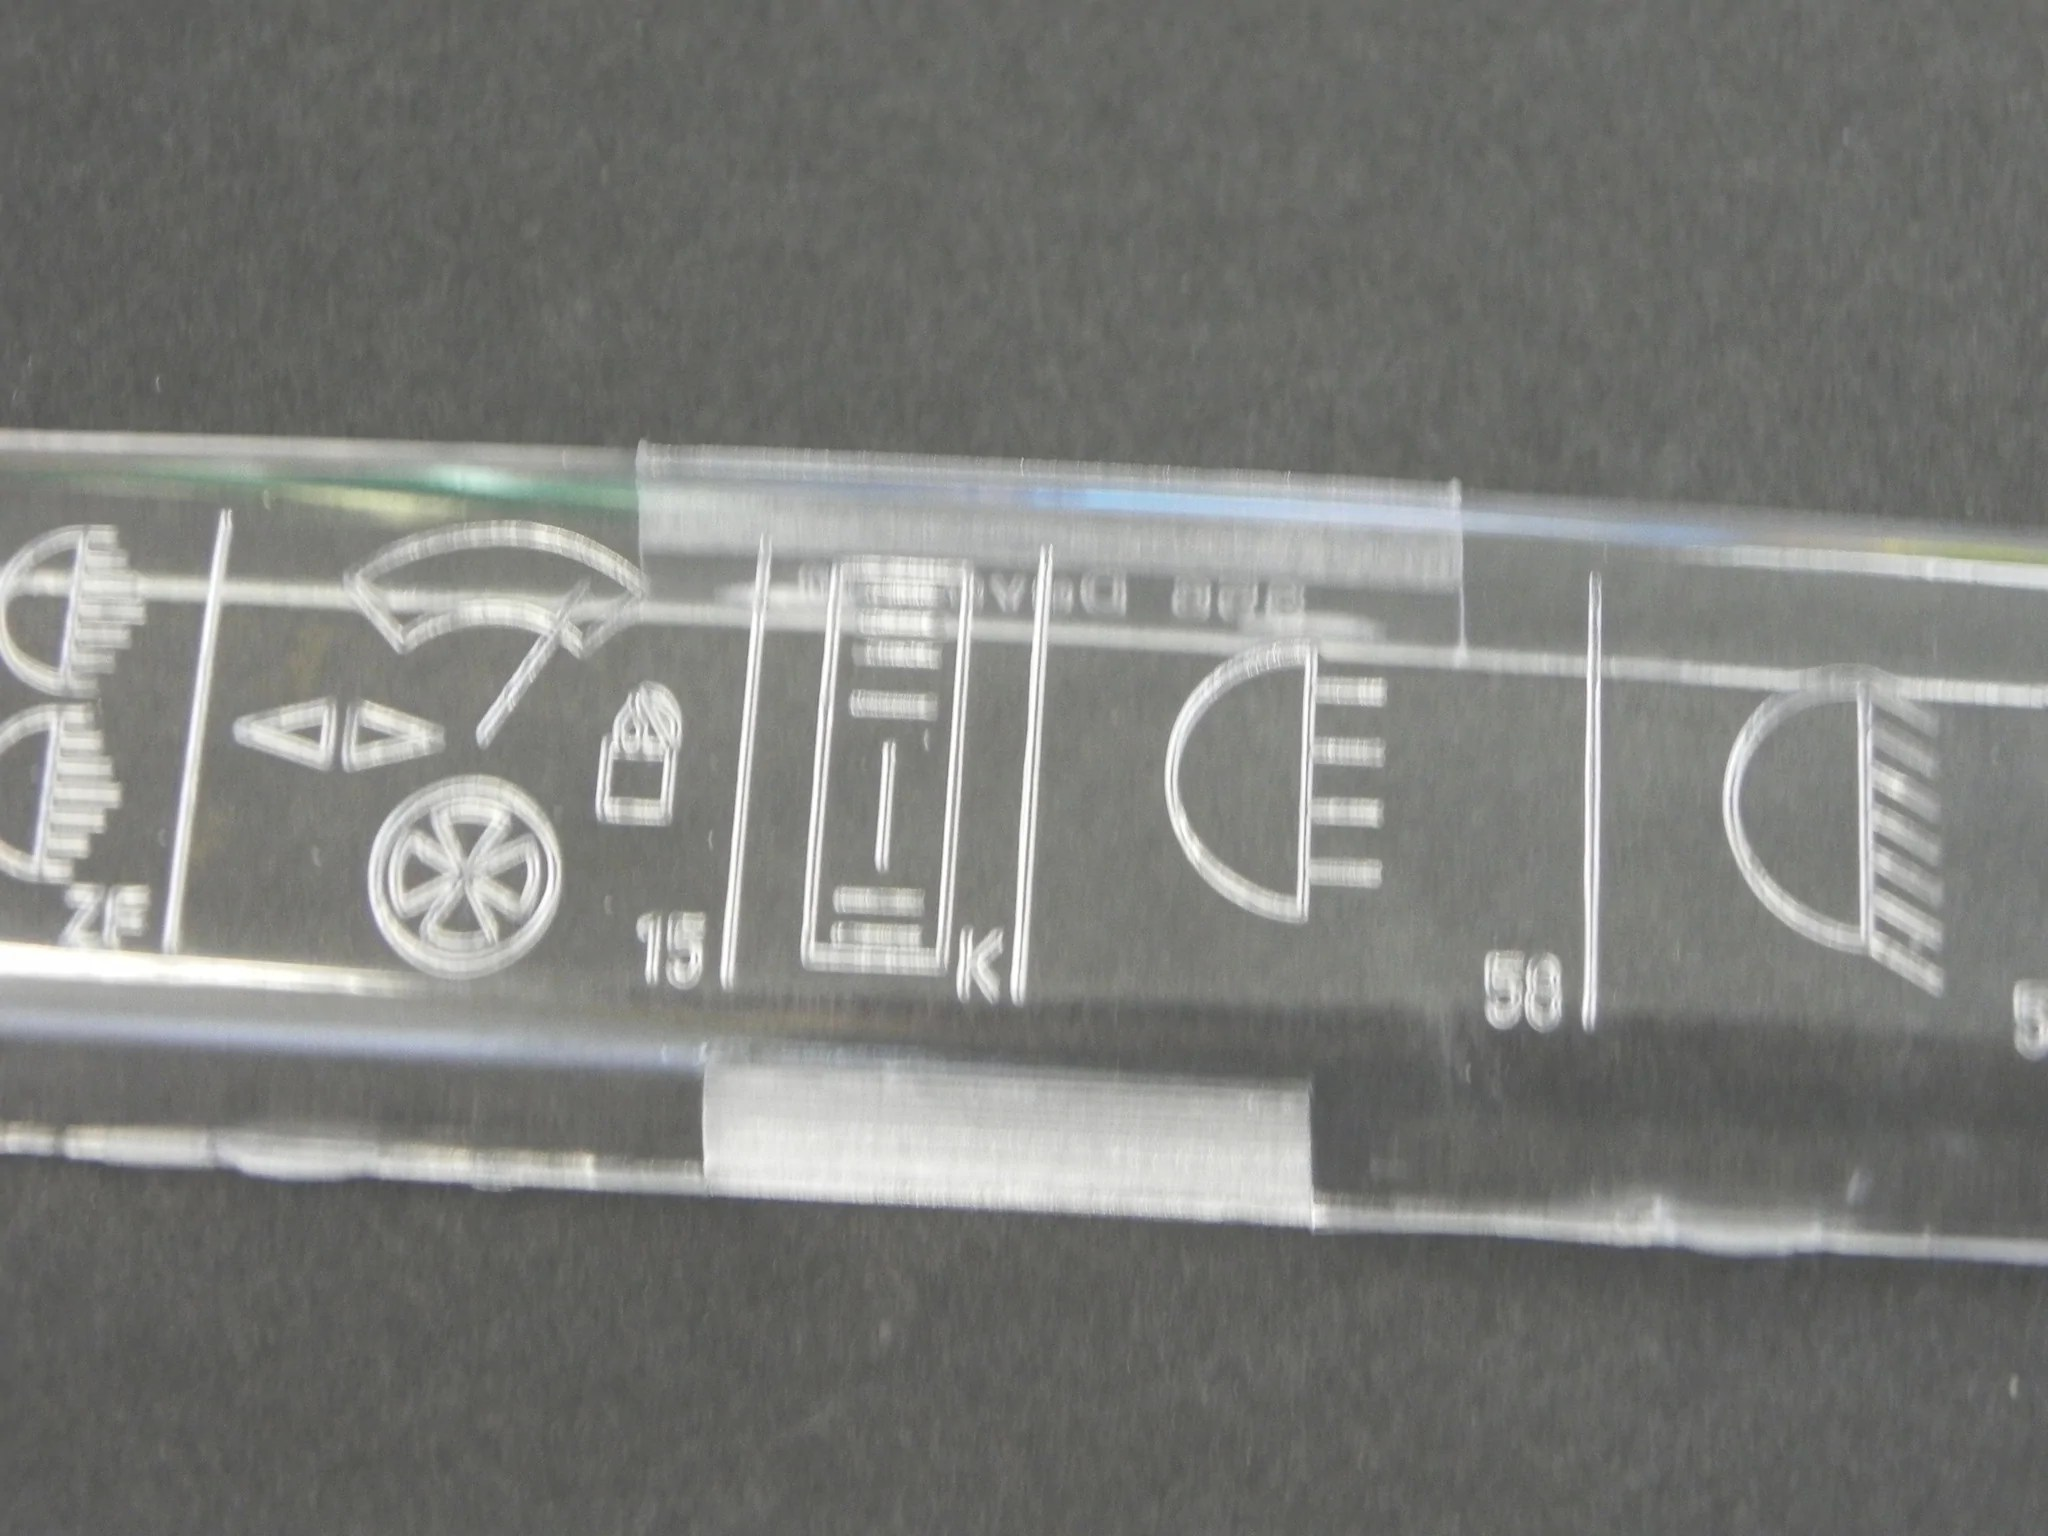 hight resolution of porsche 914 fuse box cover lid wiring diagram papernew 914 12 pole fuse box cover